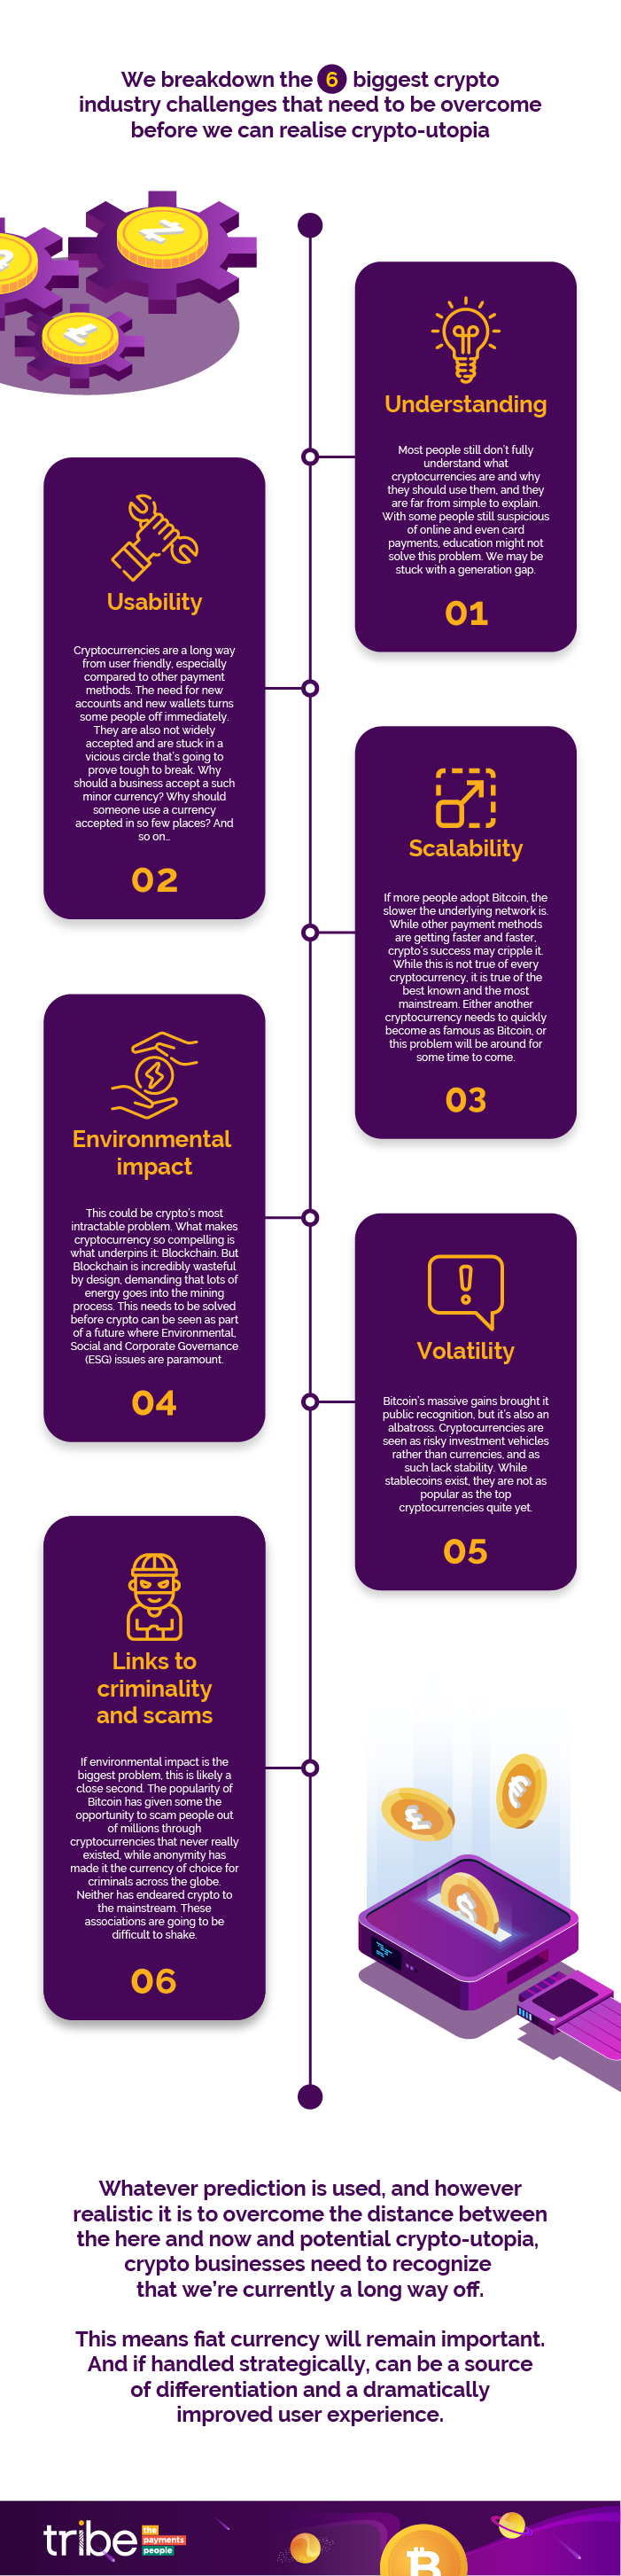 Tribe-infographic-crypto-challenges-2020